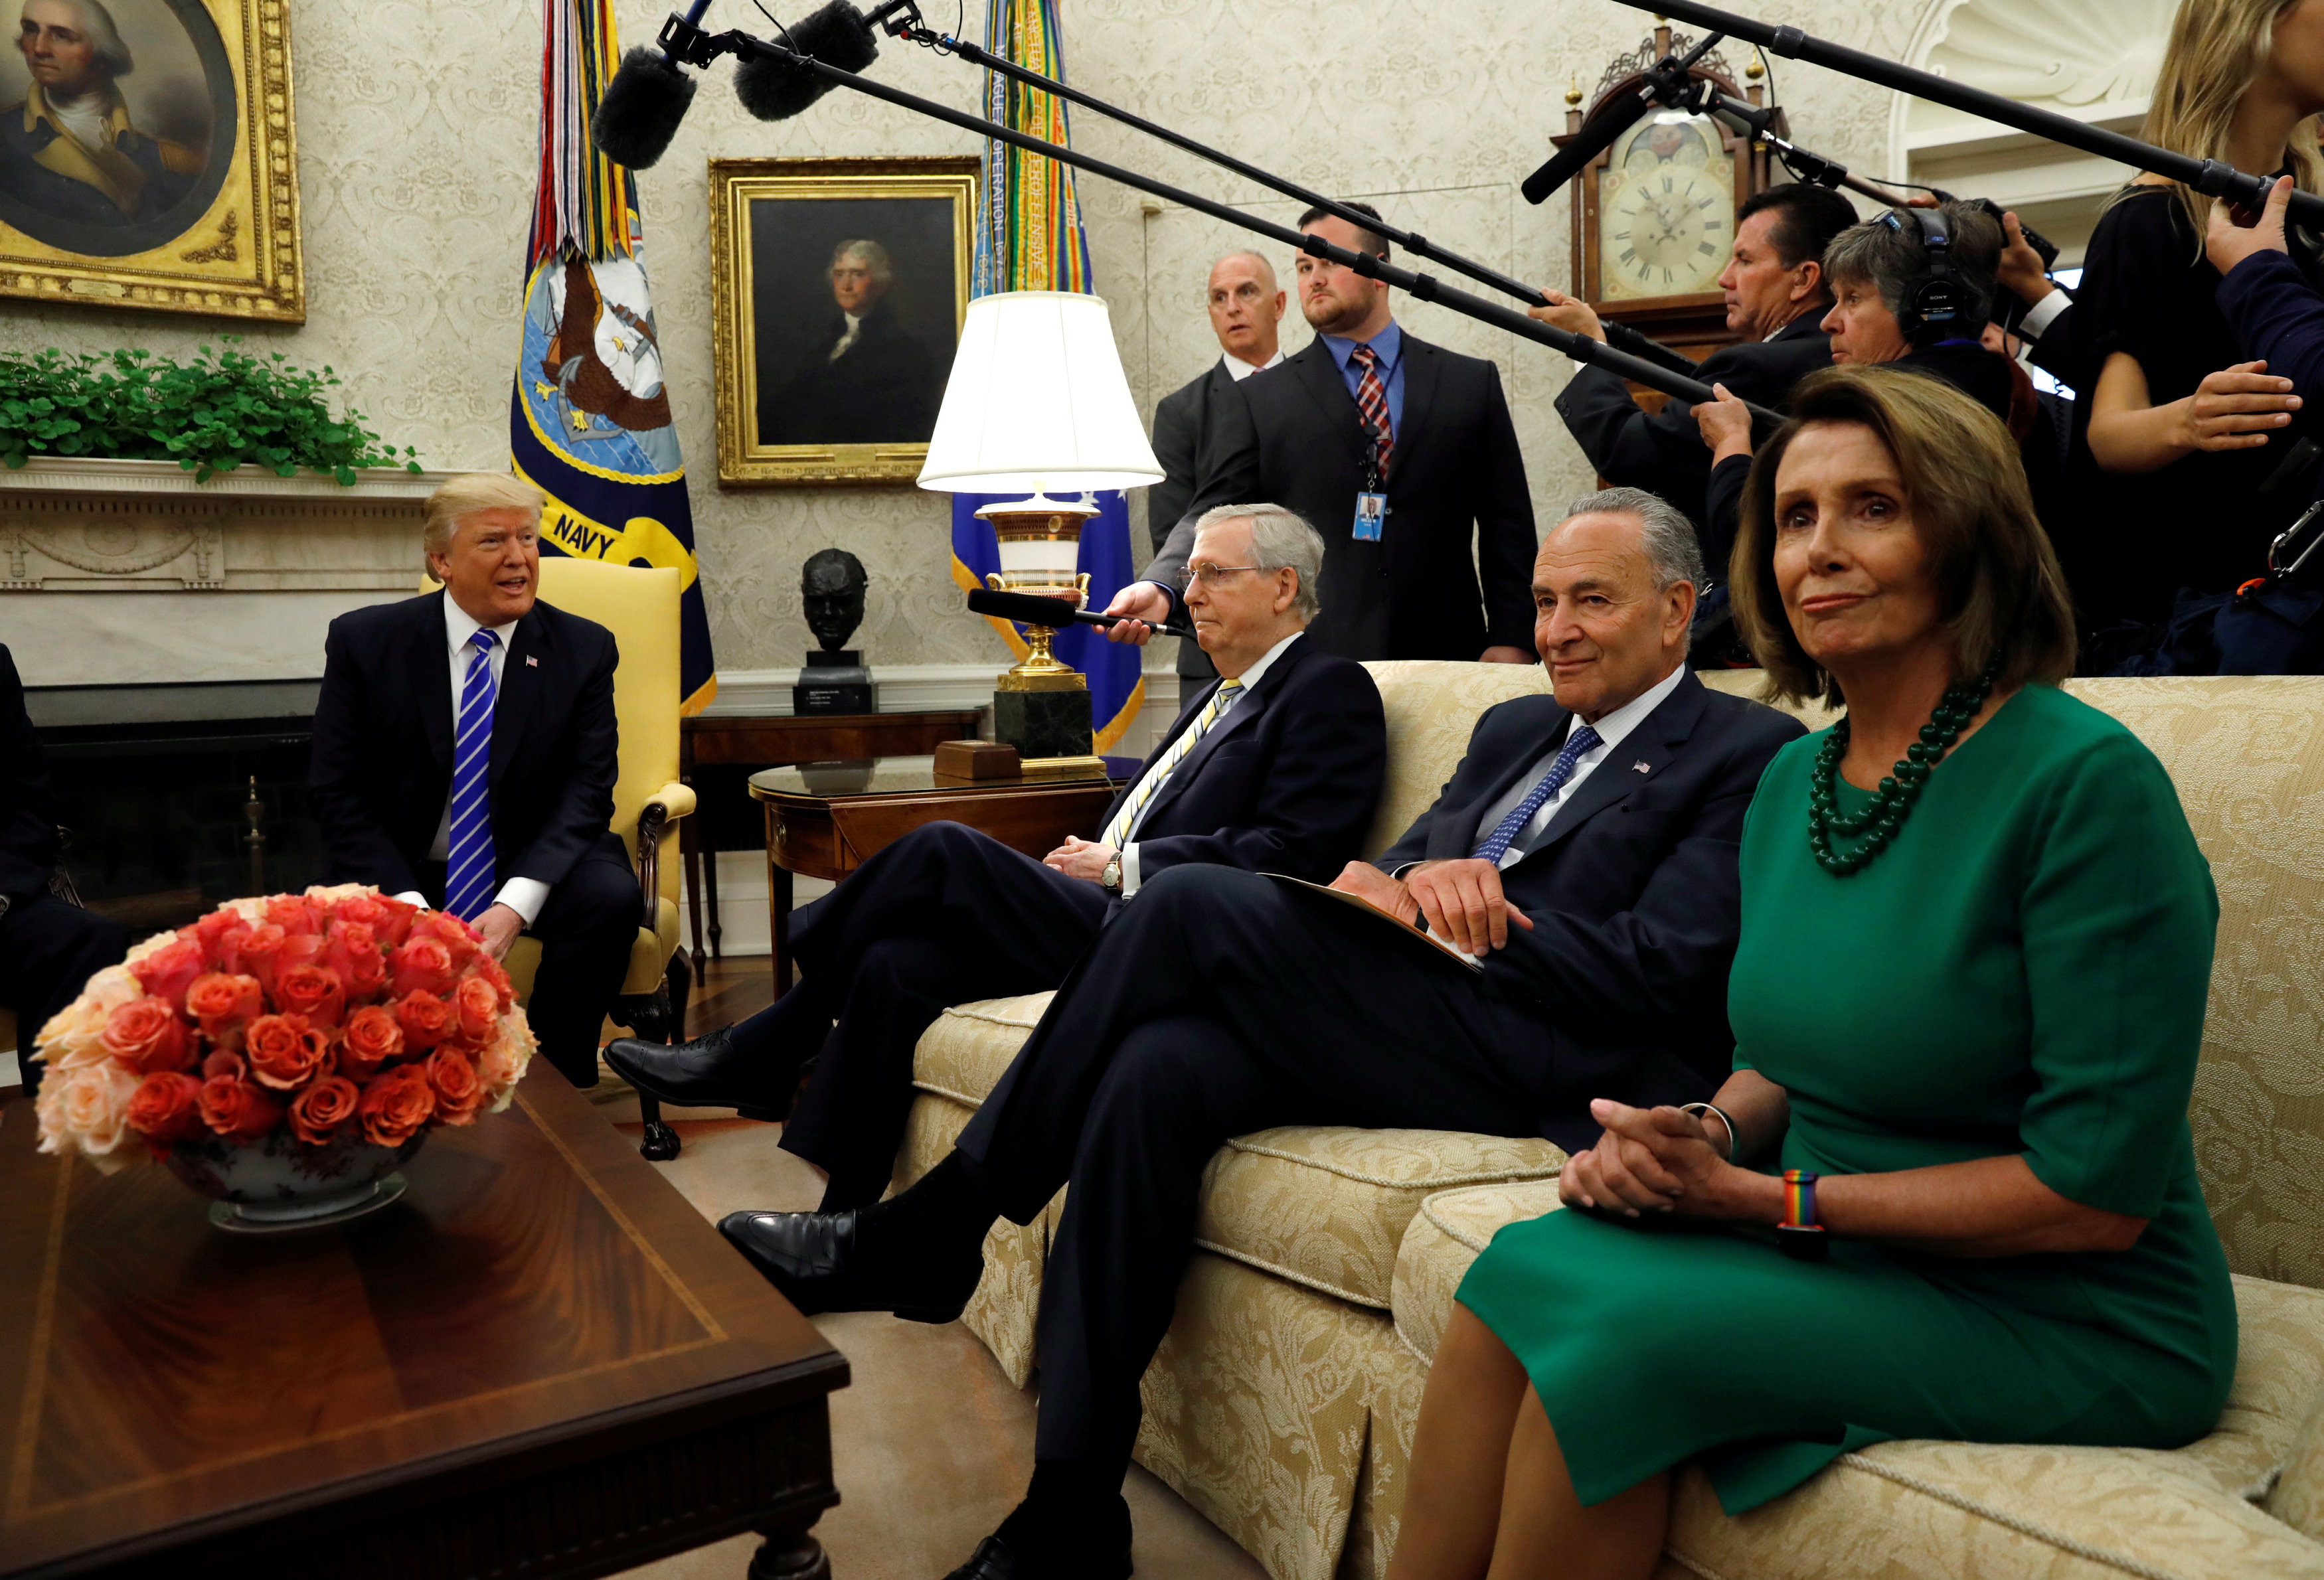 U.S. President Donald Trump meets with Senate Majority Leader Mitch McConnell (L), U.S. Senate Democratic Leader Chuck Schumer (2nd R), House Minority Leader Nancy Pelosi (R) and other congressional leaders in the Oval Office of the White House in Washington, U.S., September 6, 2017. REUTERS/Kevin Lamarque